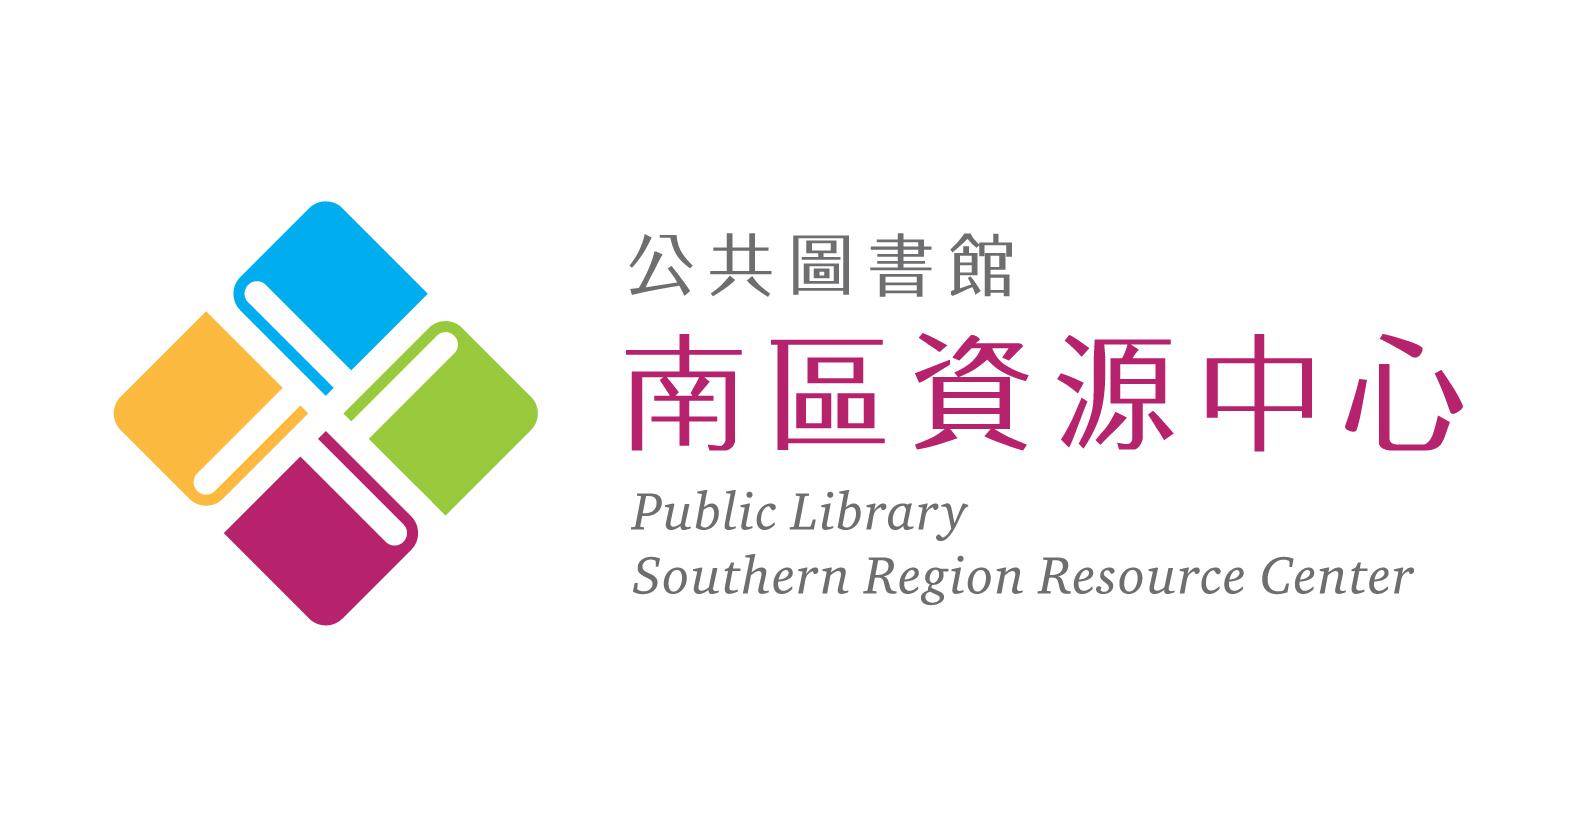 Southern Regional Resource Center